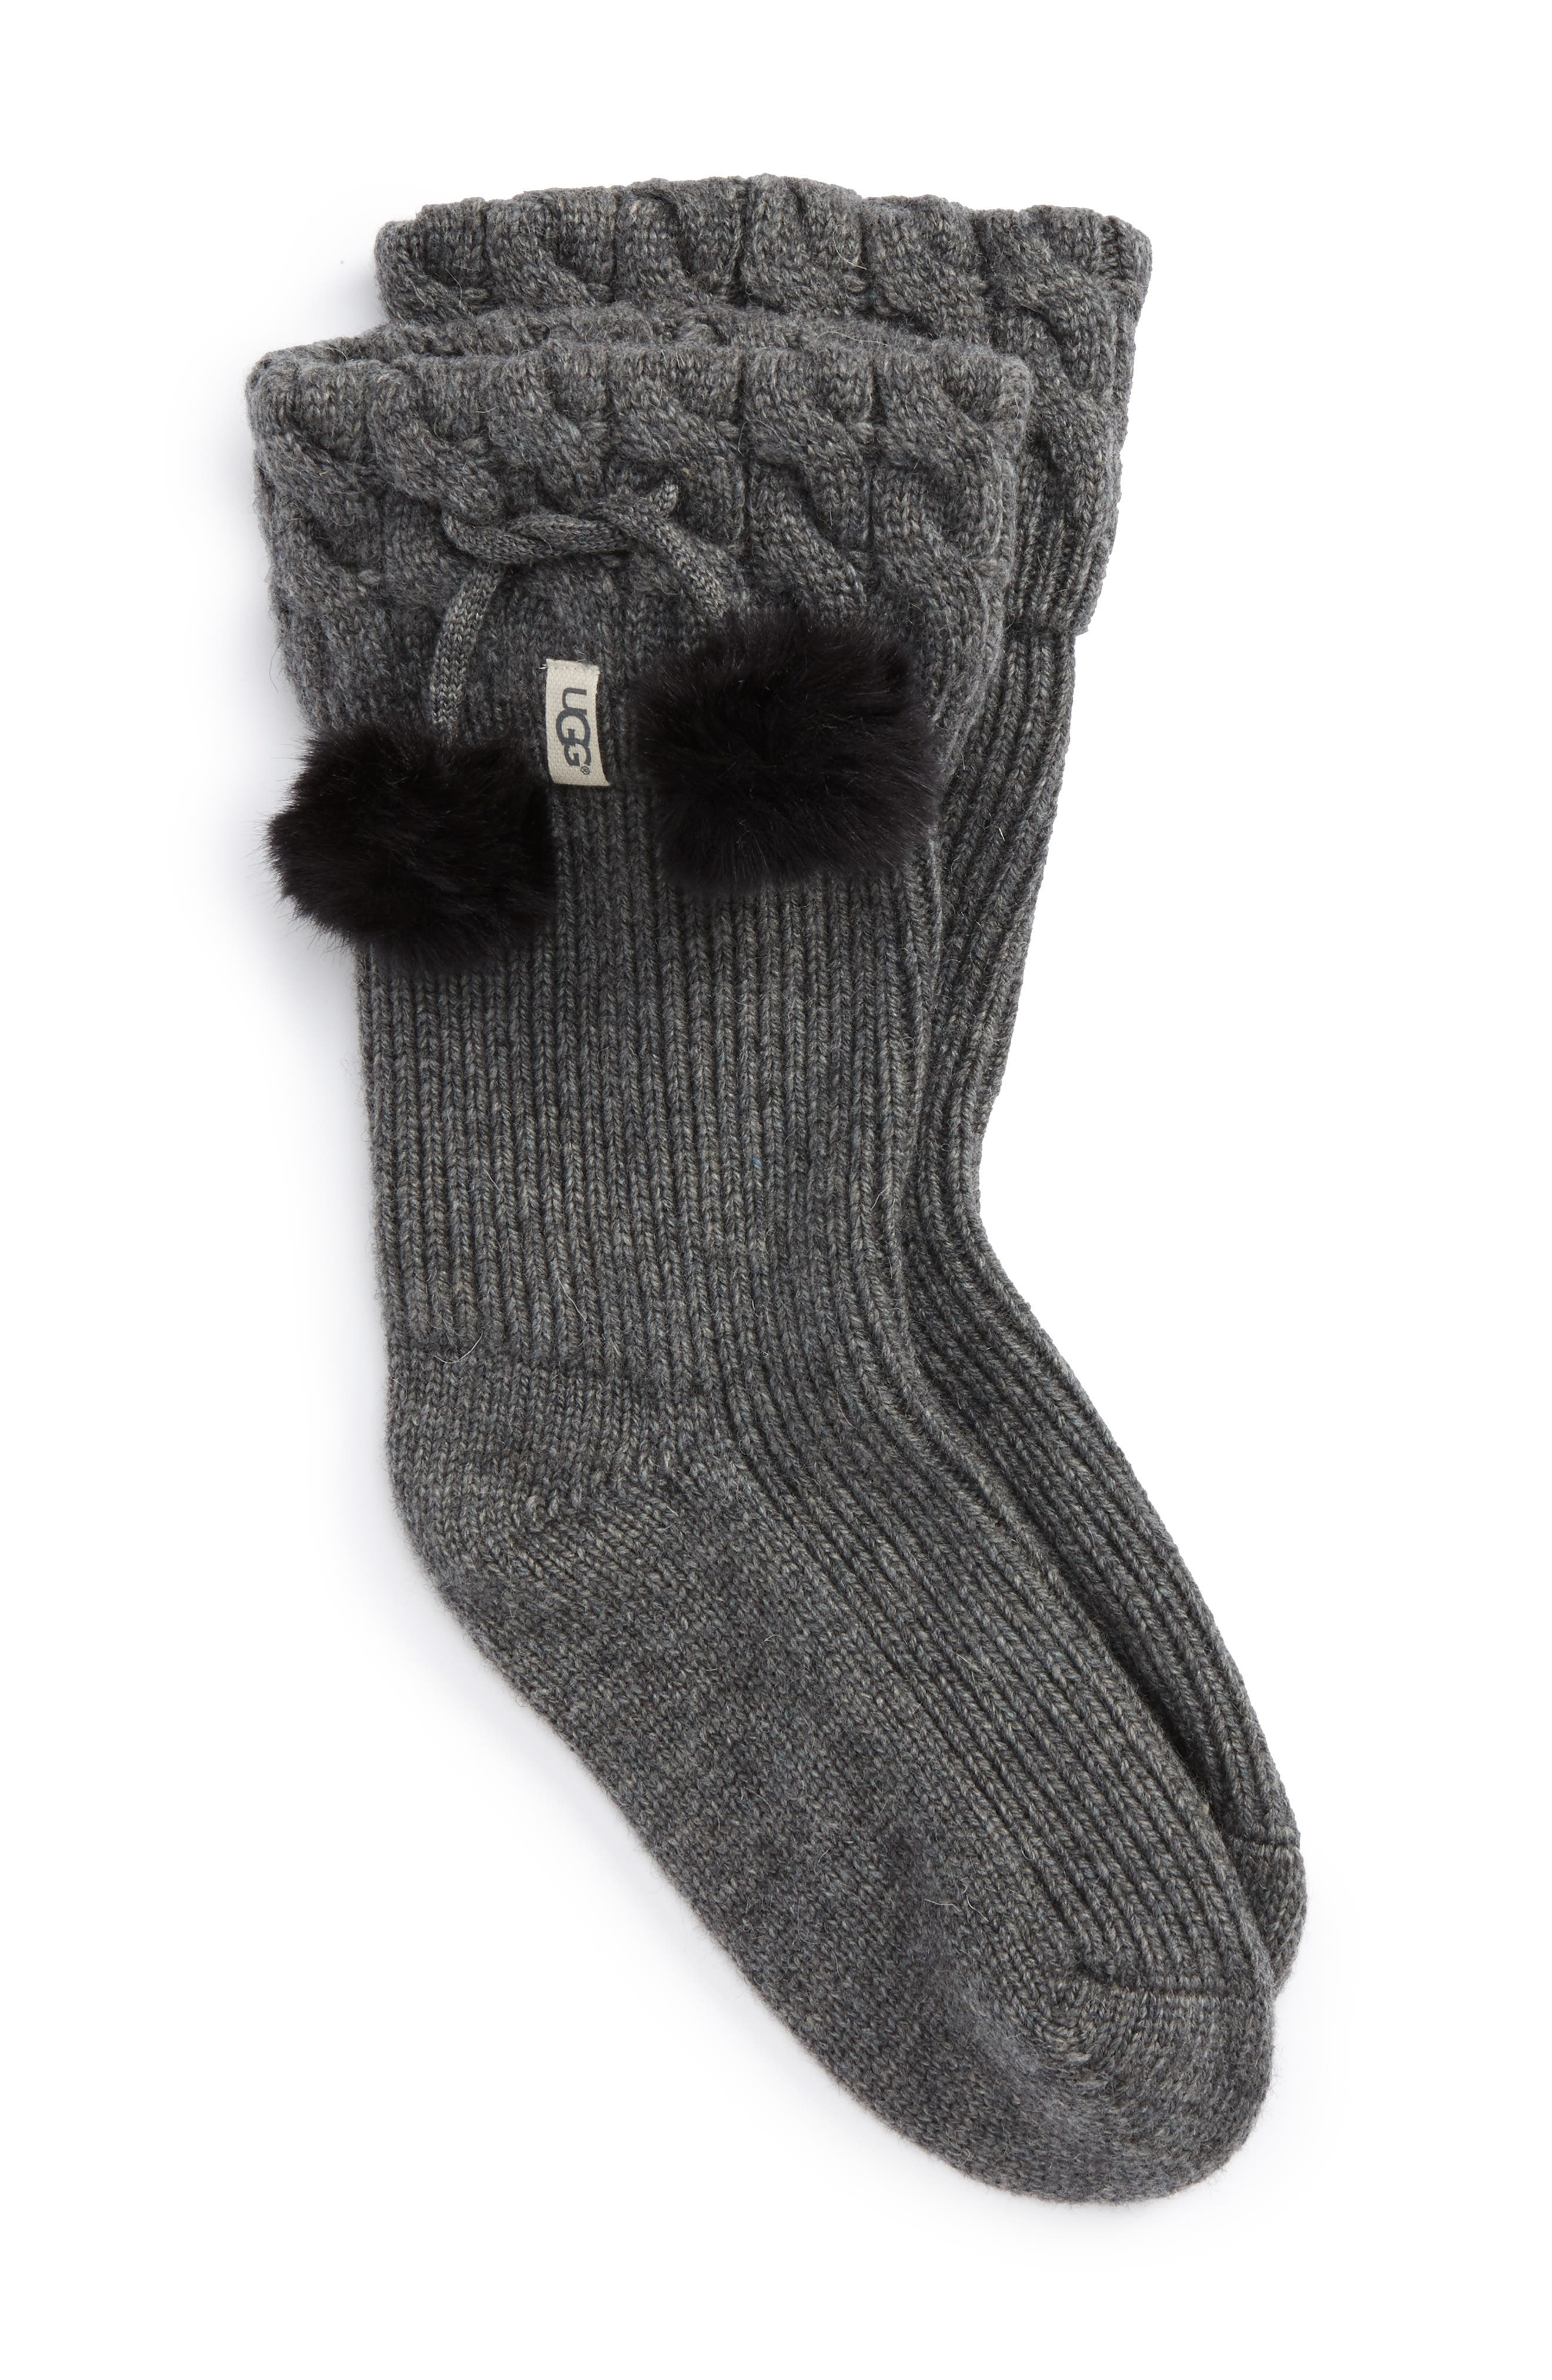 UGGpure<sup>™</sup> Pompom Short Rain Boot Sock,                             Main thumbnail 1, color,                             Charcoal Heather Wool